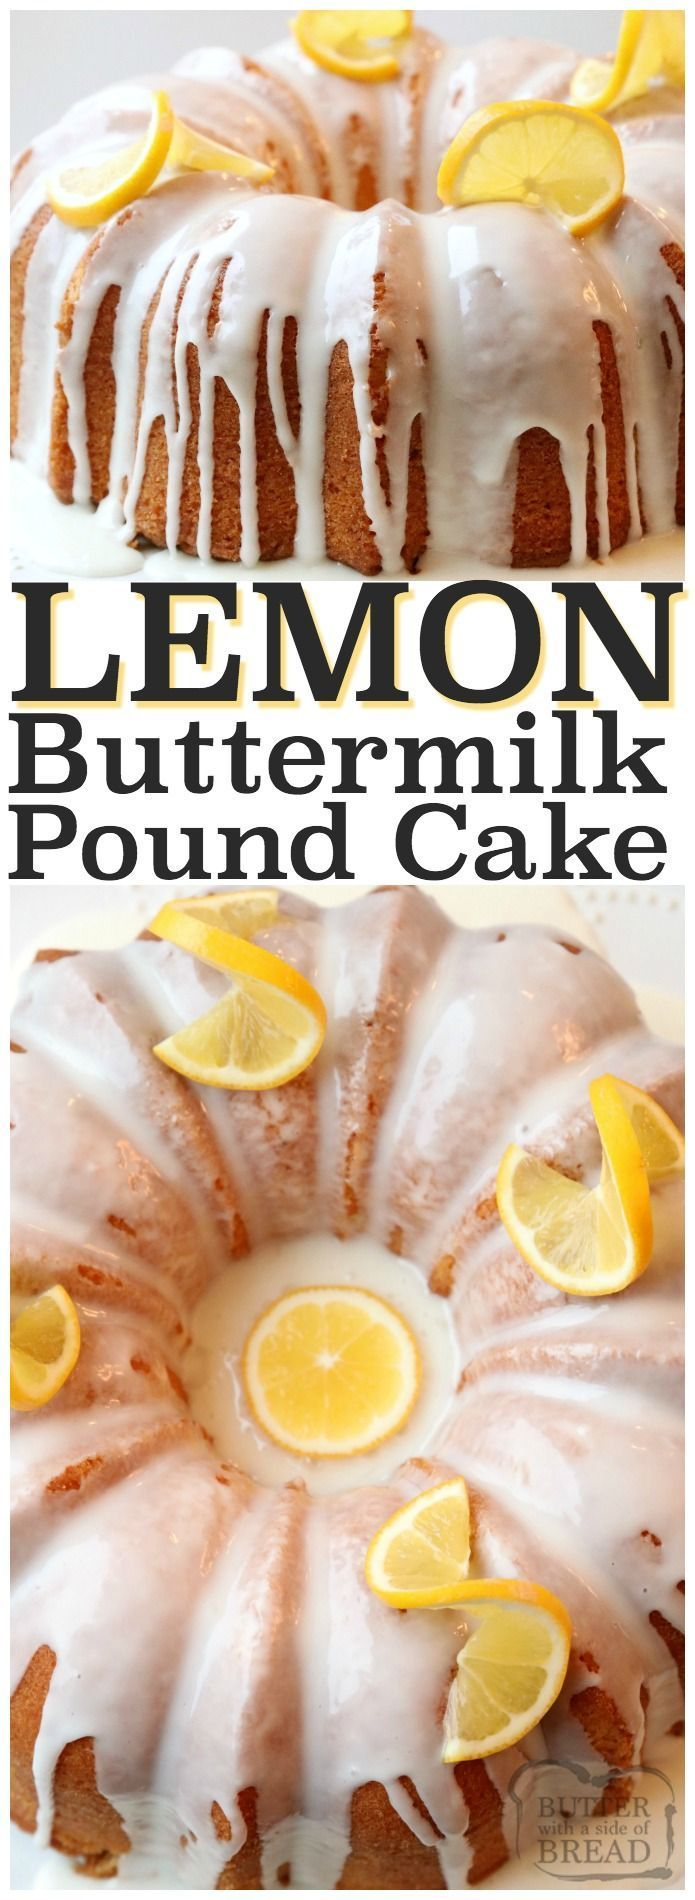 LEMON BUTTERMILK POUND CAKE Lemon Buttermilk Pound Cake is a classic pound cake recipe with the add